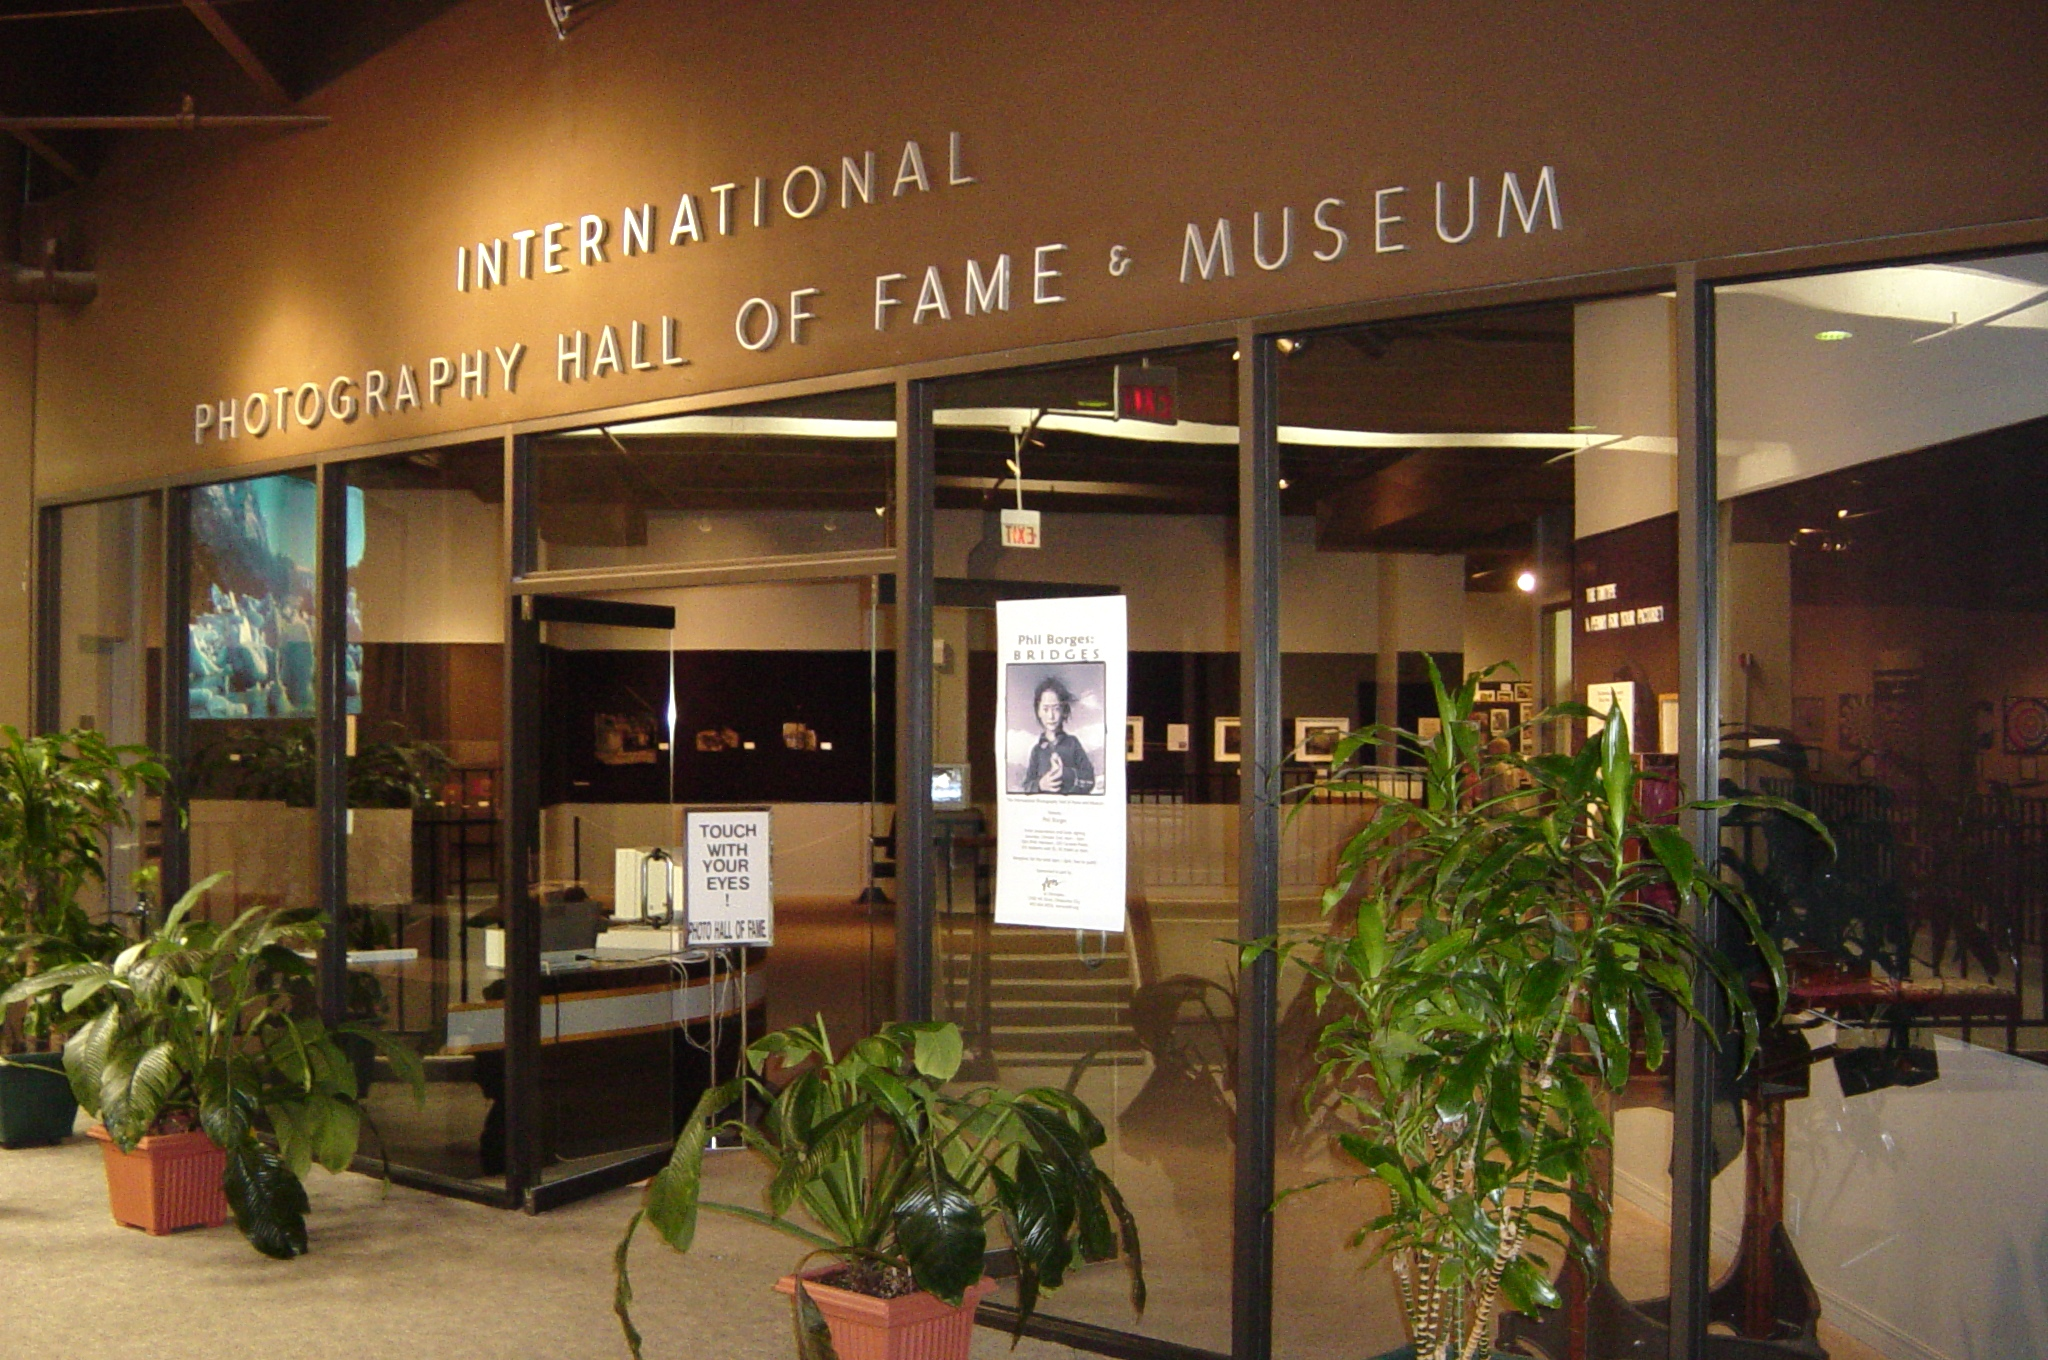 fileomniplex science museum international photography hall of fame and museumjpg